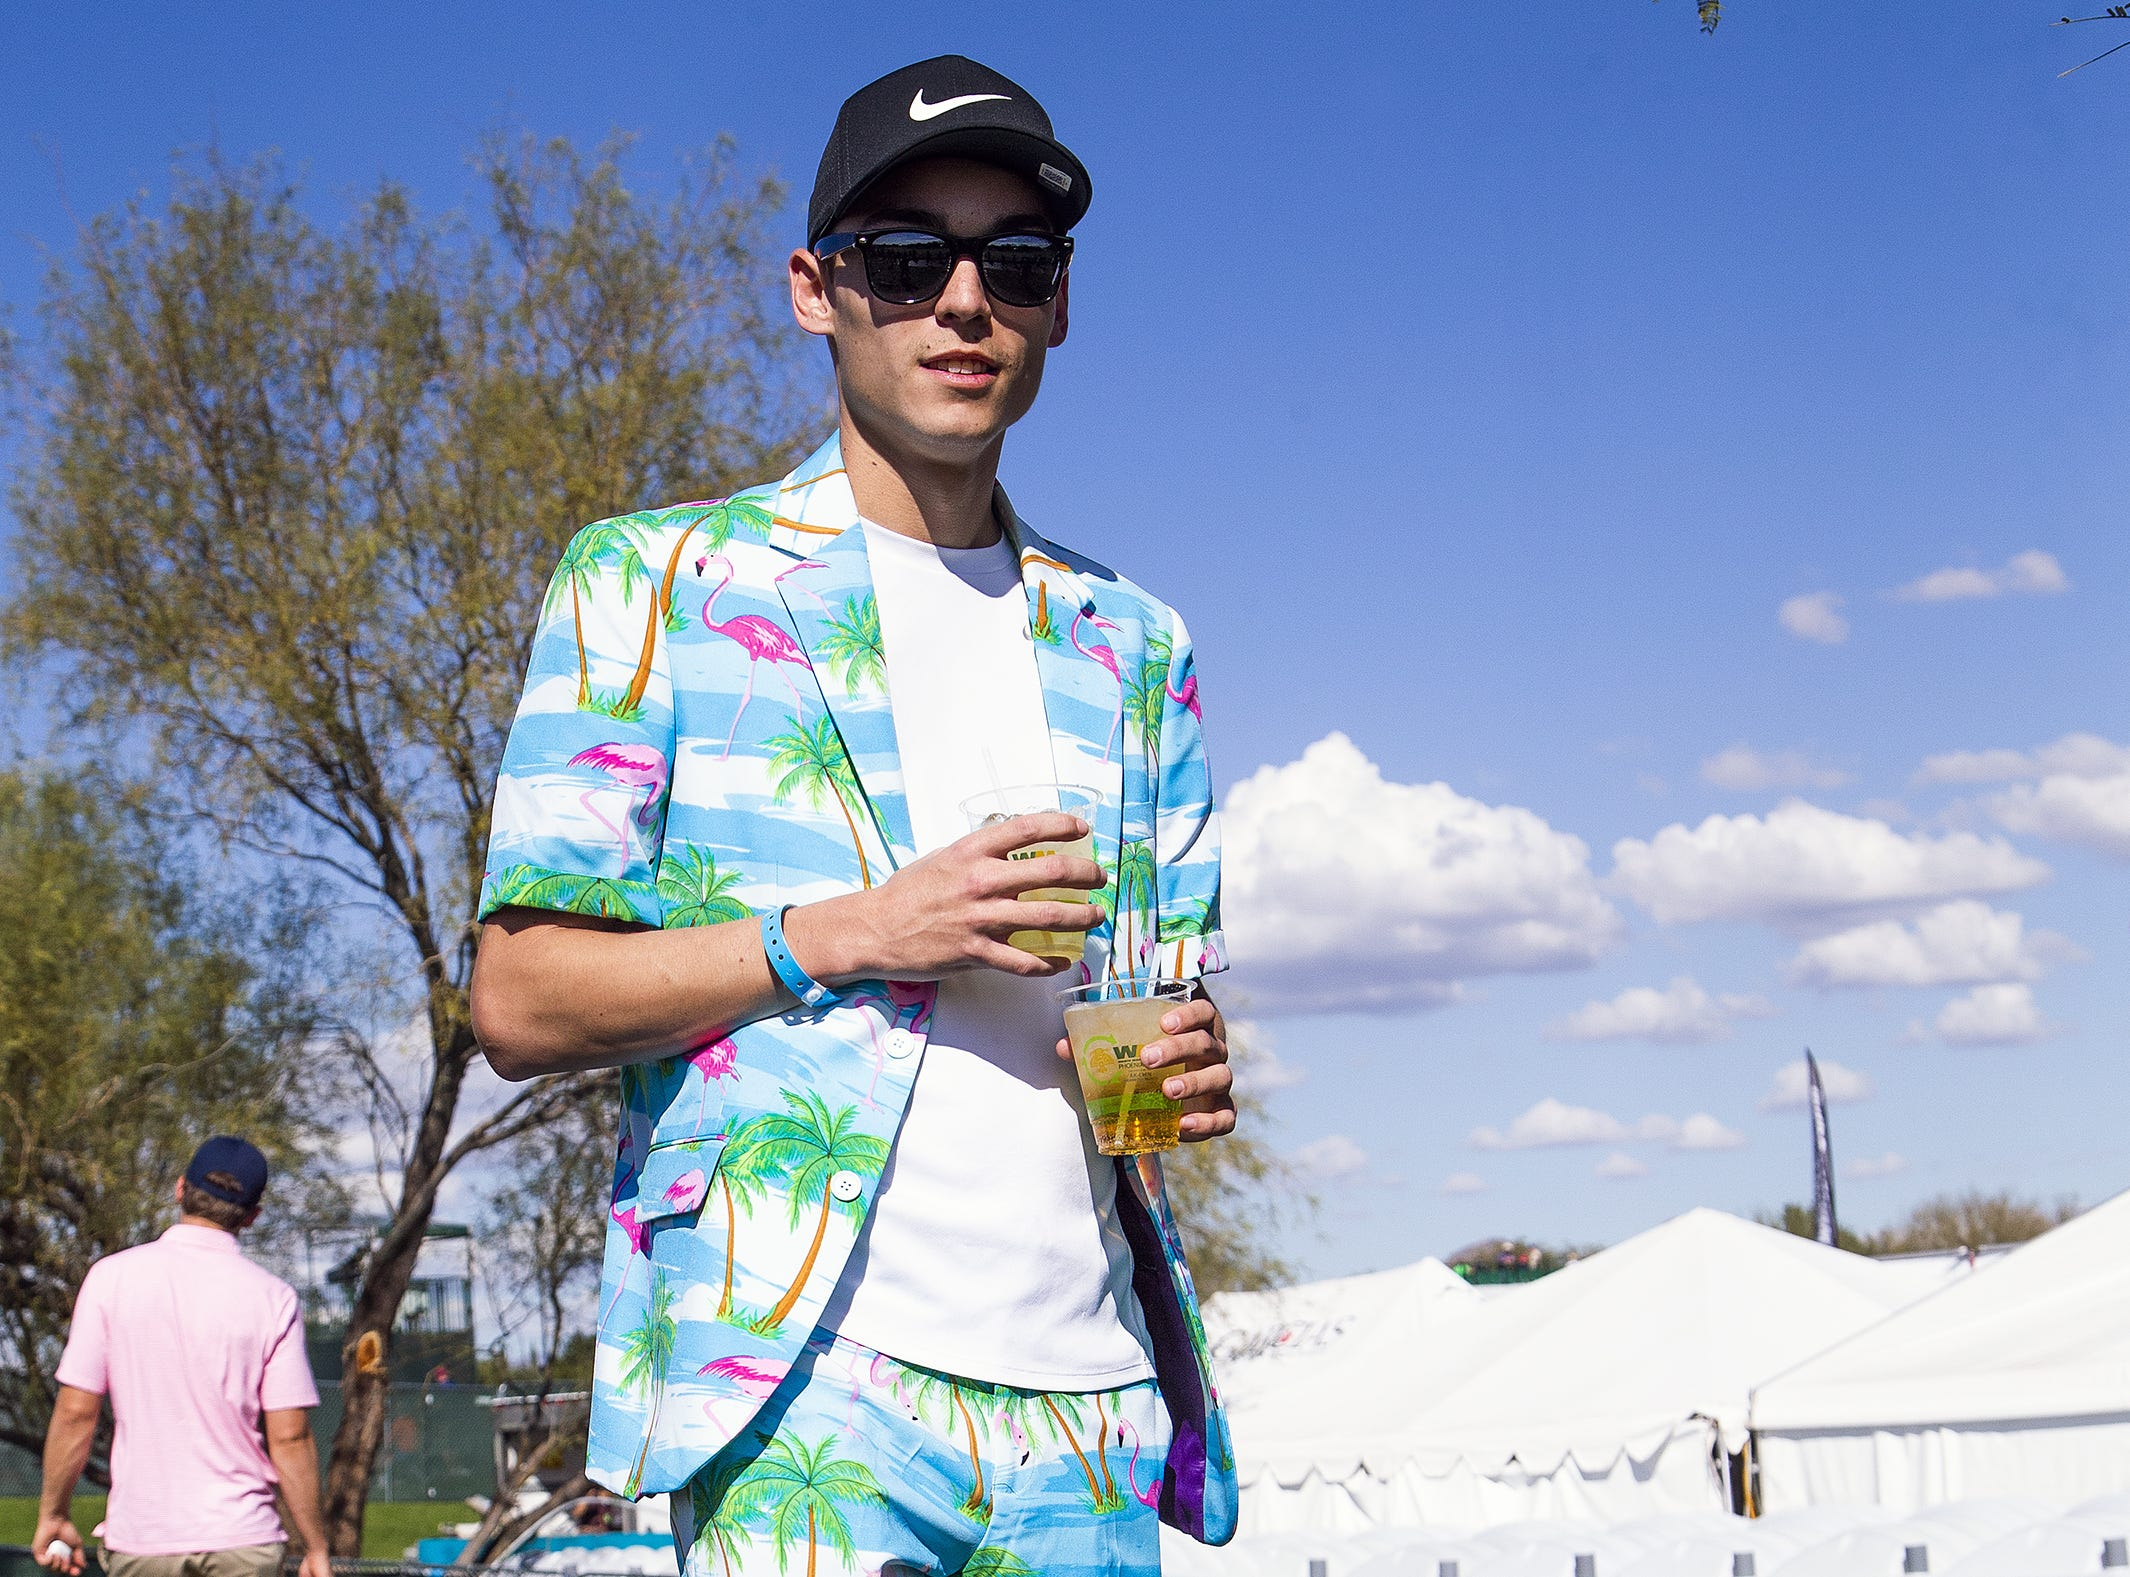 David Stump, 25, Albuquerque, wears his Friday finest during the second round of the Waste Management Phoenix Open at the TPC Scottsdale, February 1, 2019.